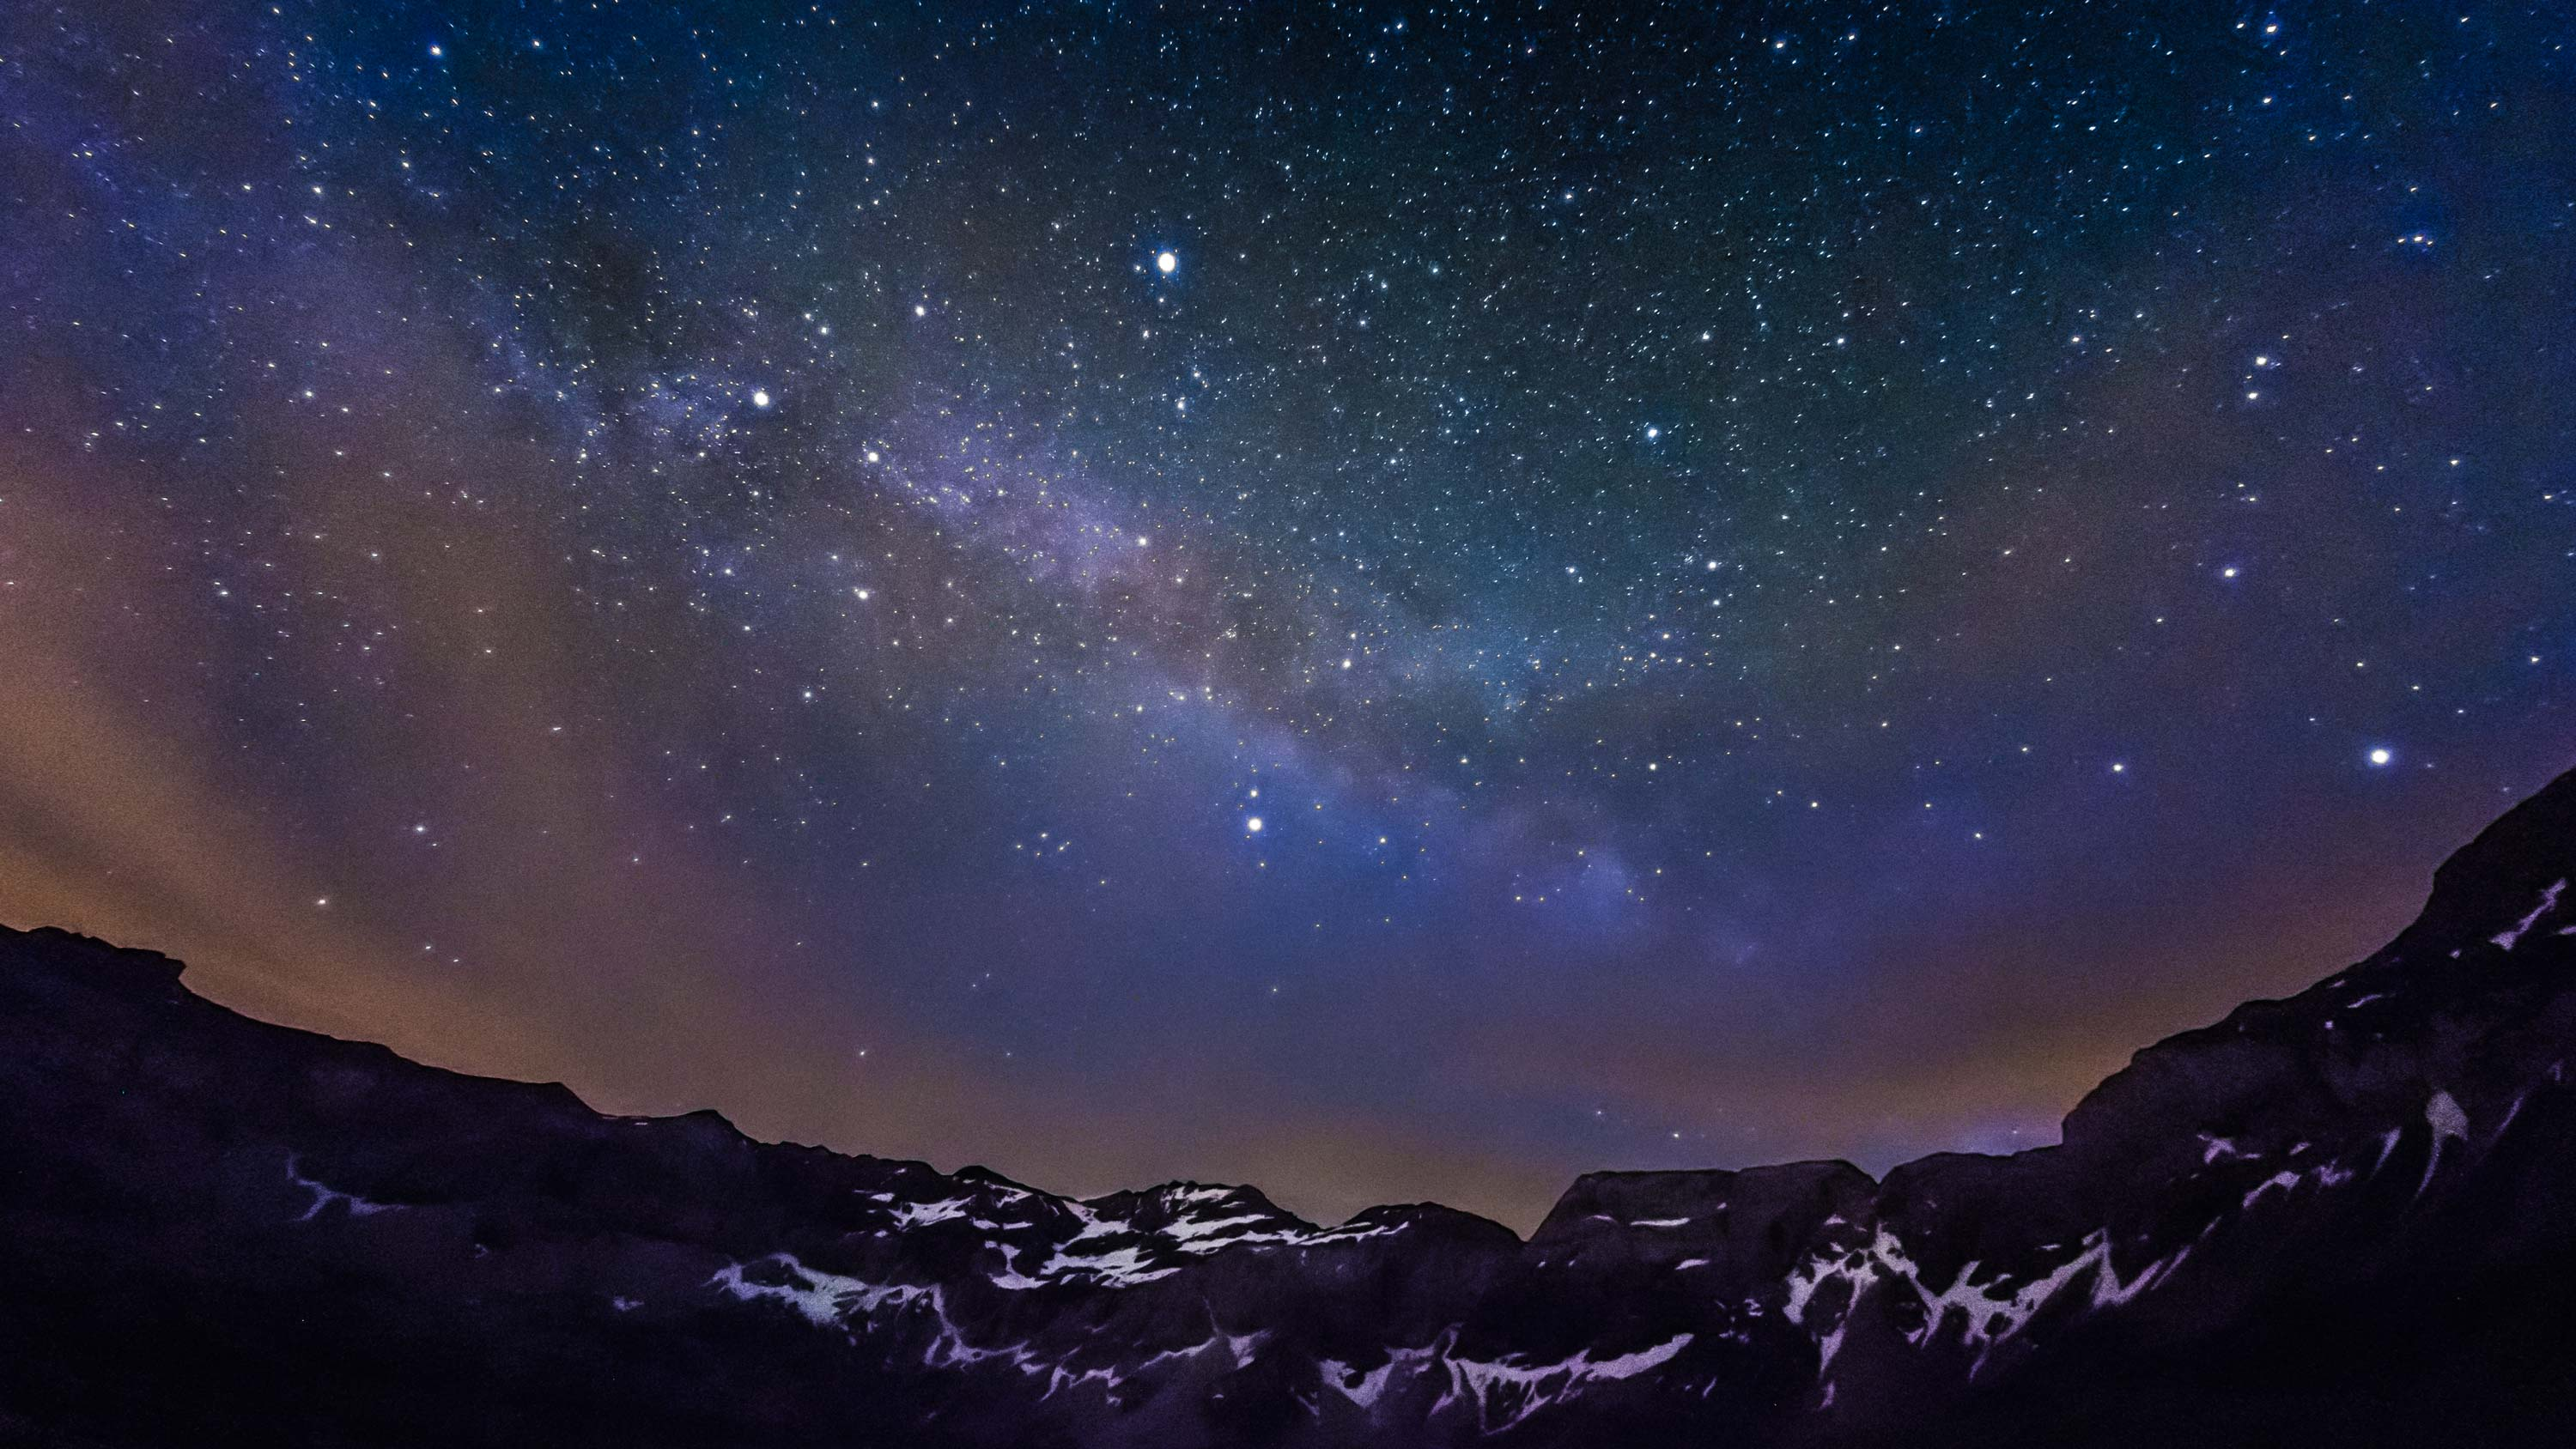 Milkyway-on-the-mounia-by-Guillaume-Coche-Photography.jpg